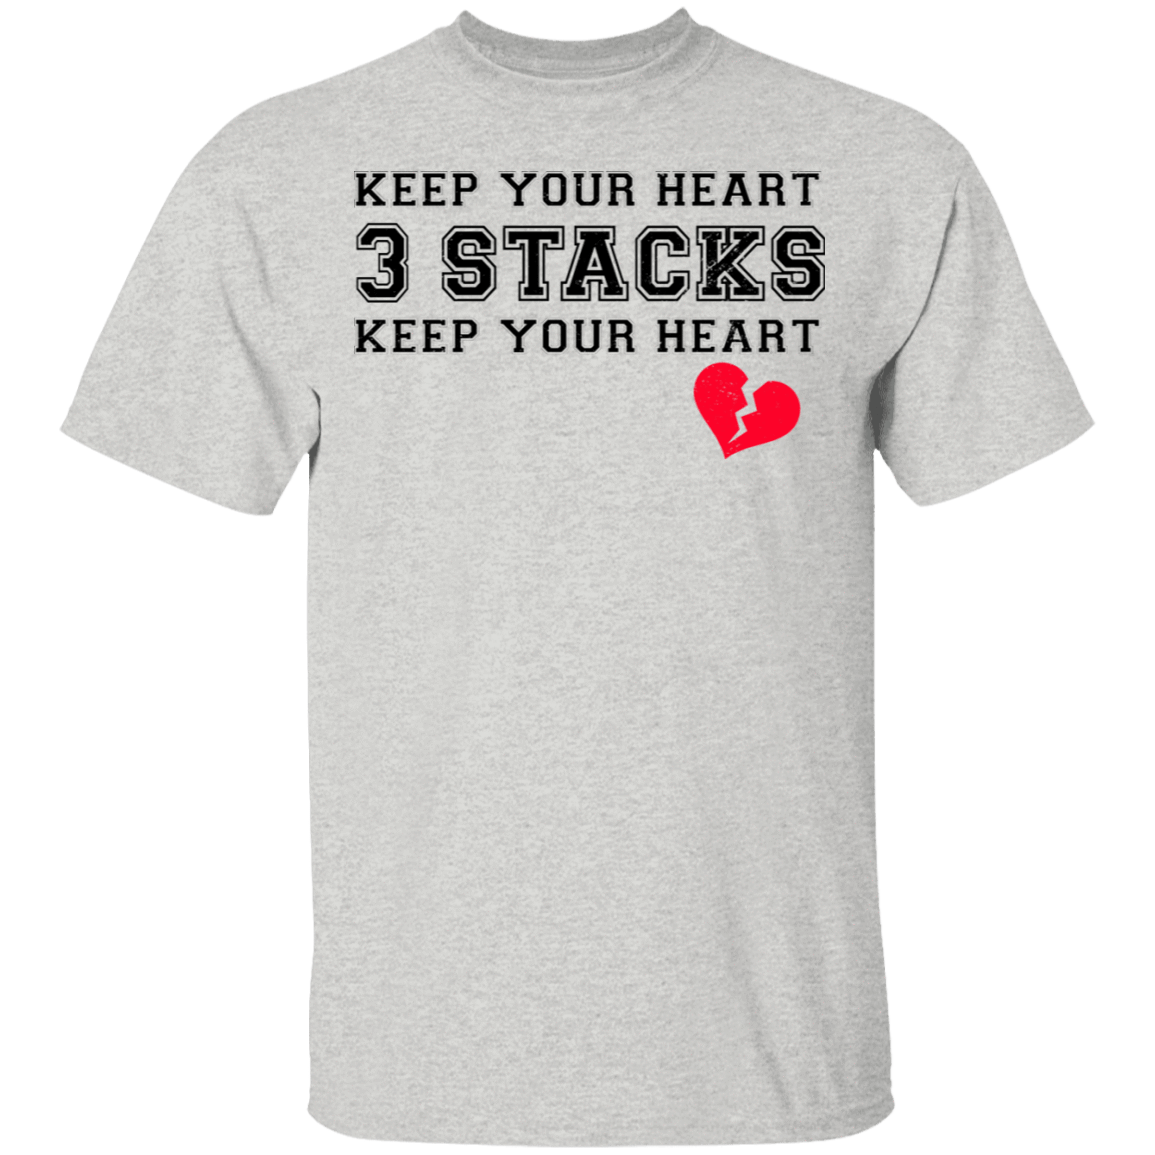 Keep Your Heart 3 Stacks T-Shirts, Hoodies 22-2475-80183506-12568 - Tee Ript